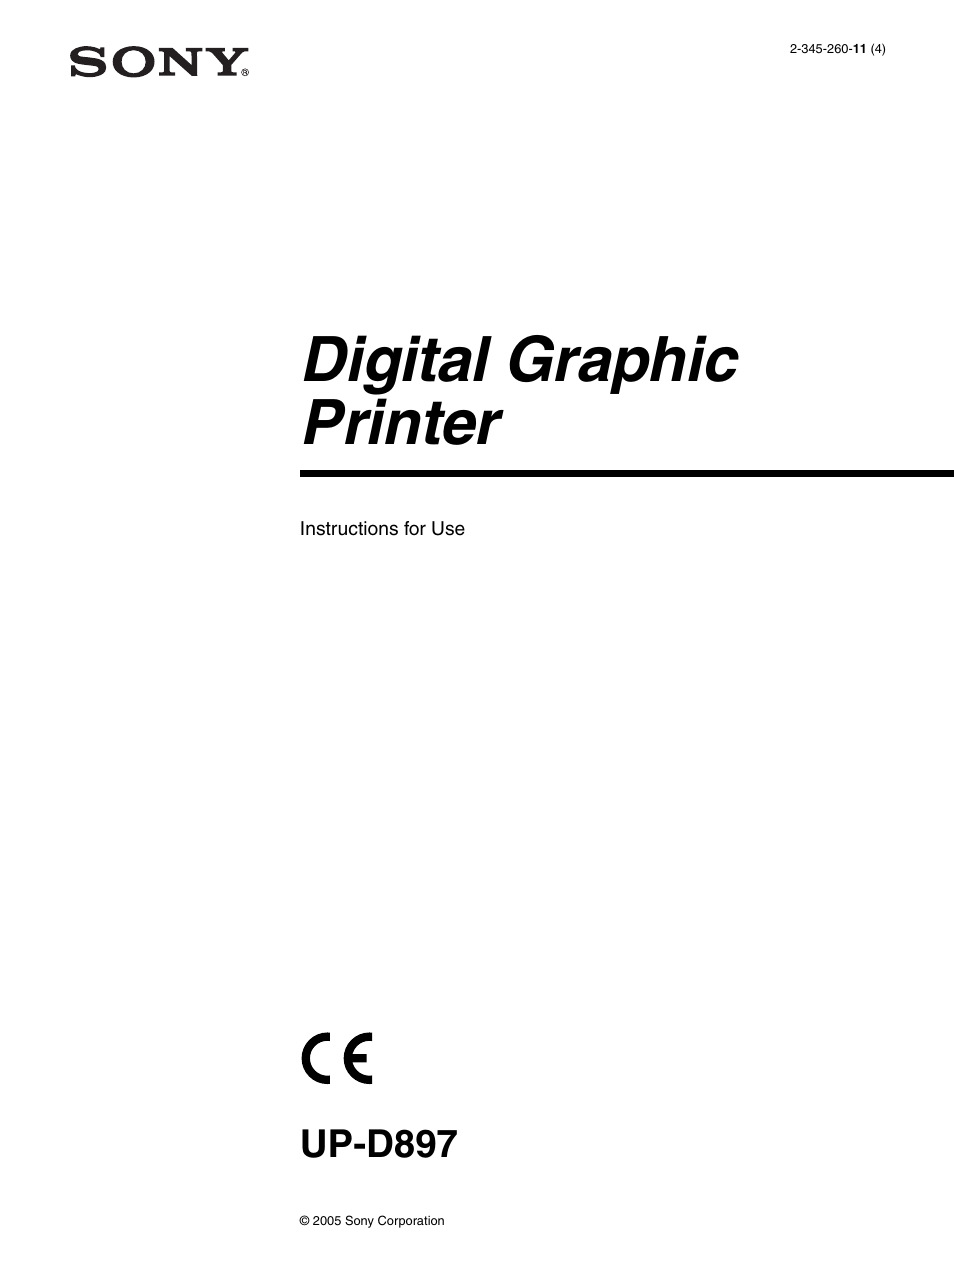 sony up d897 user manual 22 pages rh manualsdir com sony printer up-d897 service manual sony printer up-d897 service manual